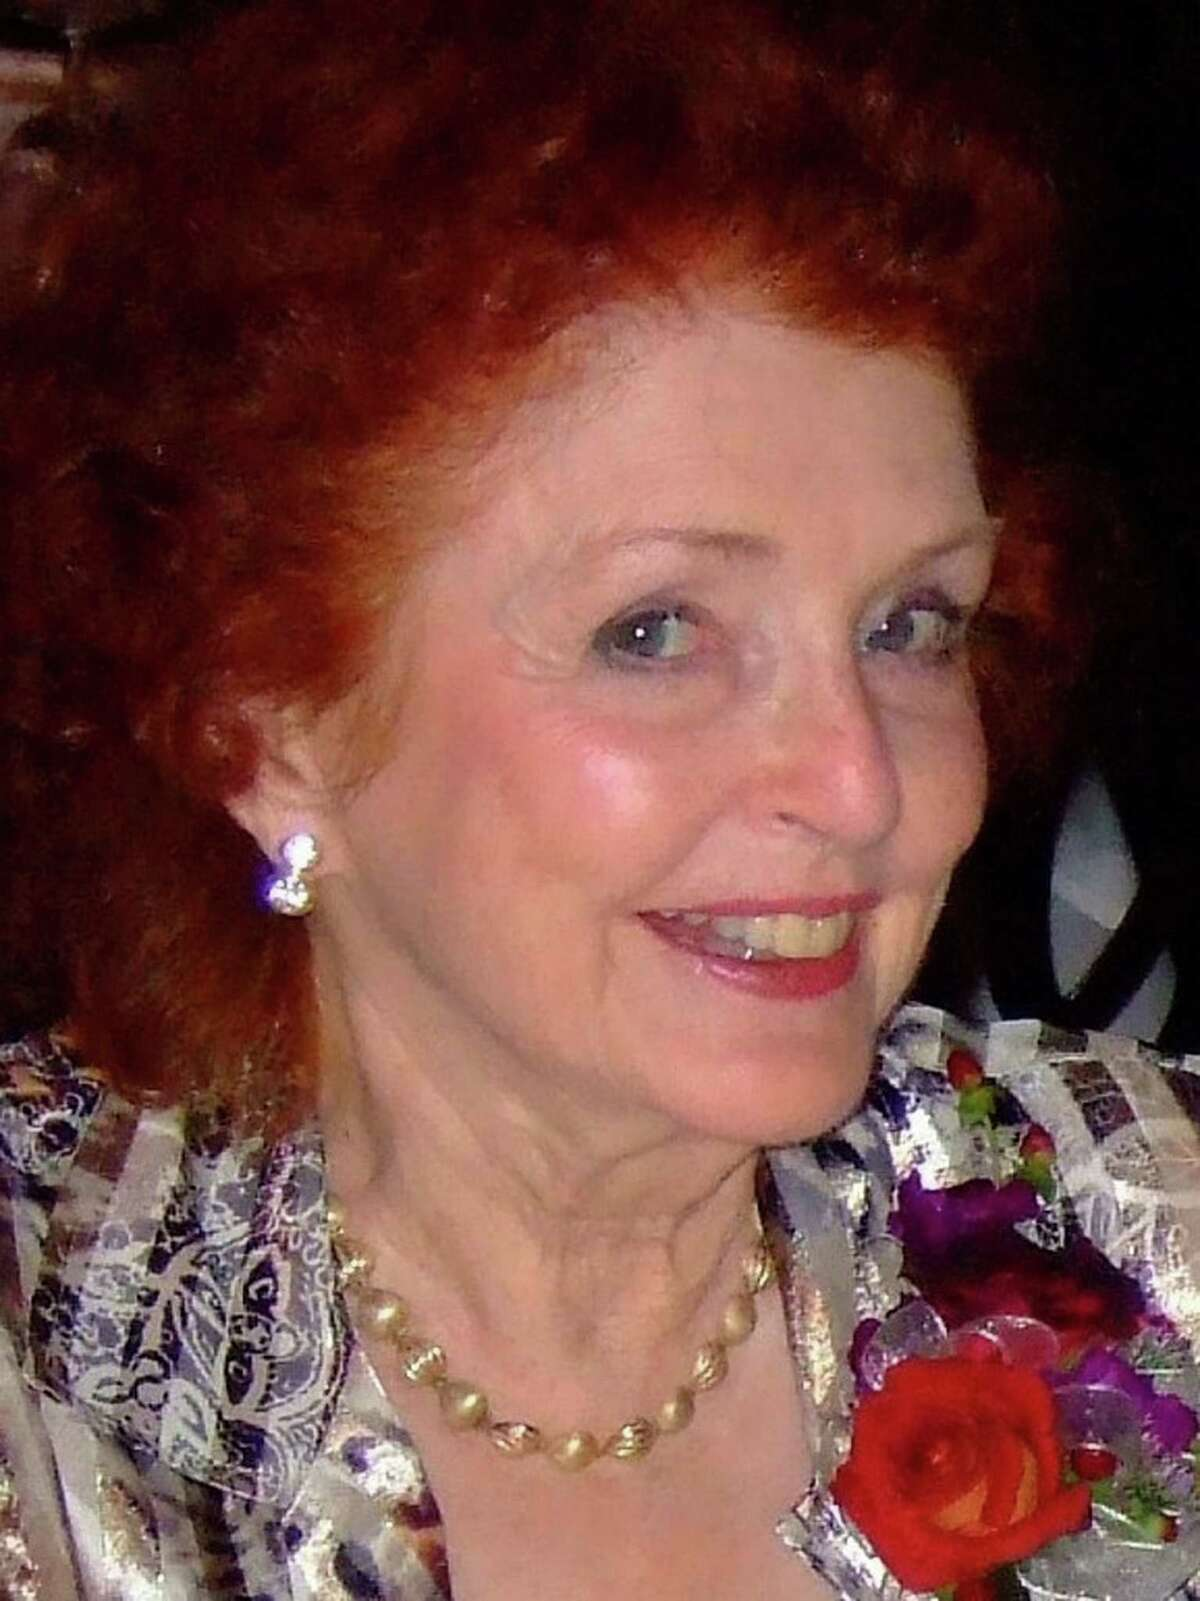 Mary Gwendolyn Boone Madere, of San Antonio, Texas died Thursday, Oct. 25, 2012 at the age of 86.